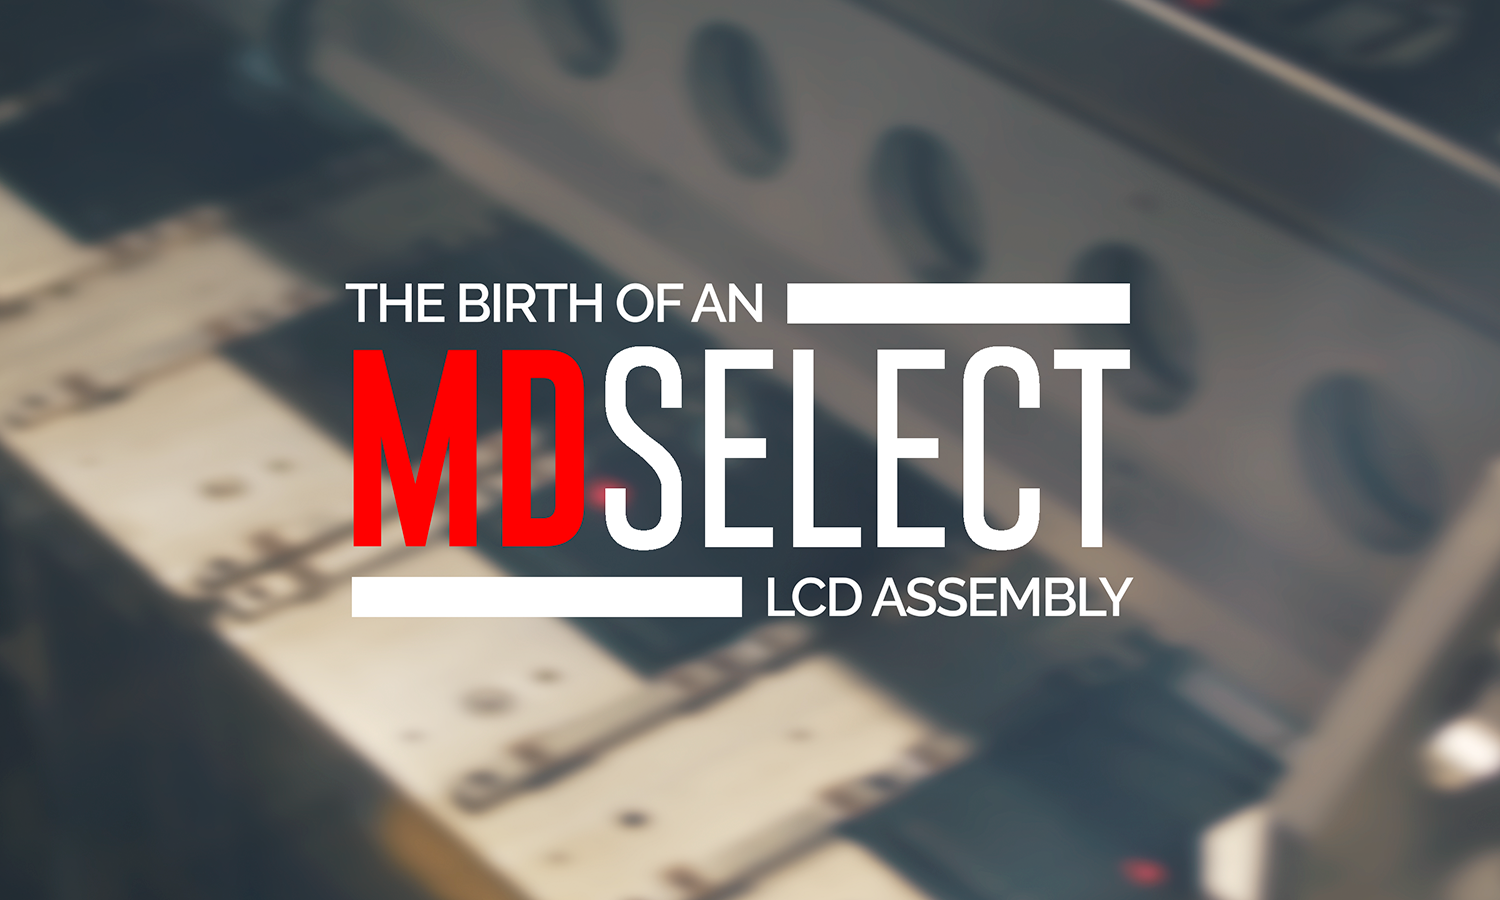 [Overway Overseas] Birth of an MD Select LCD Assembly